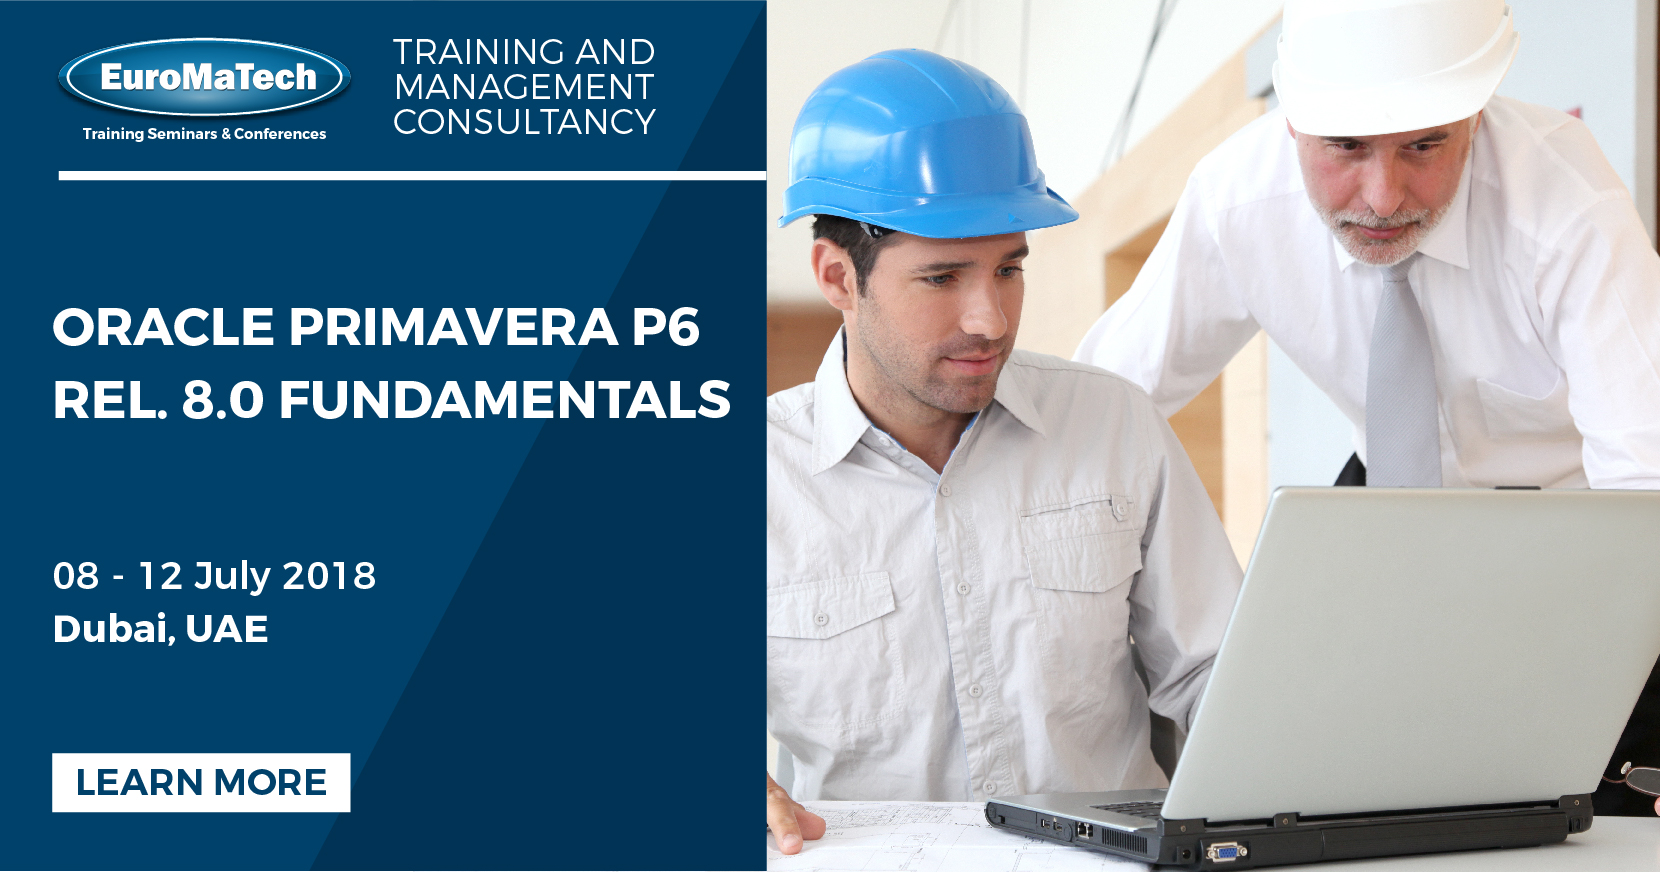 Oracle Primavera P6 Rel. 8.0 Fundamentals